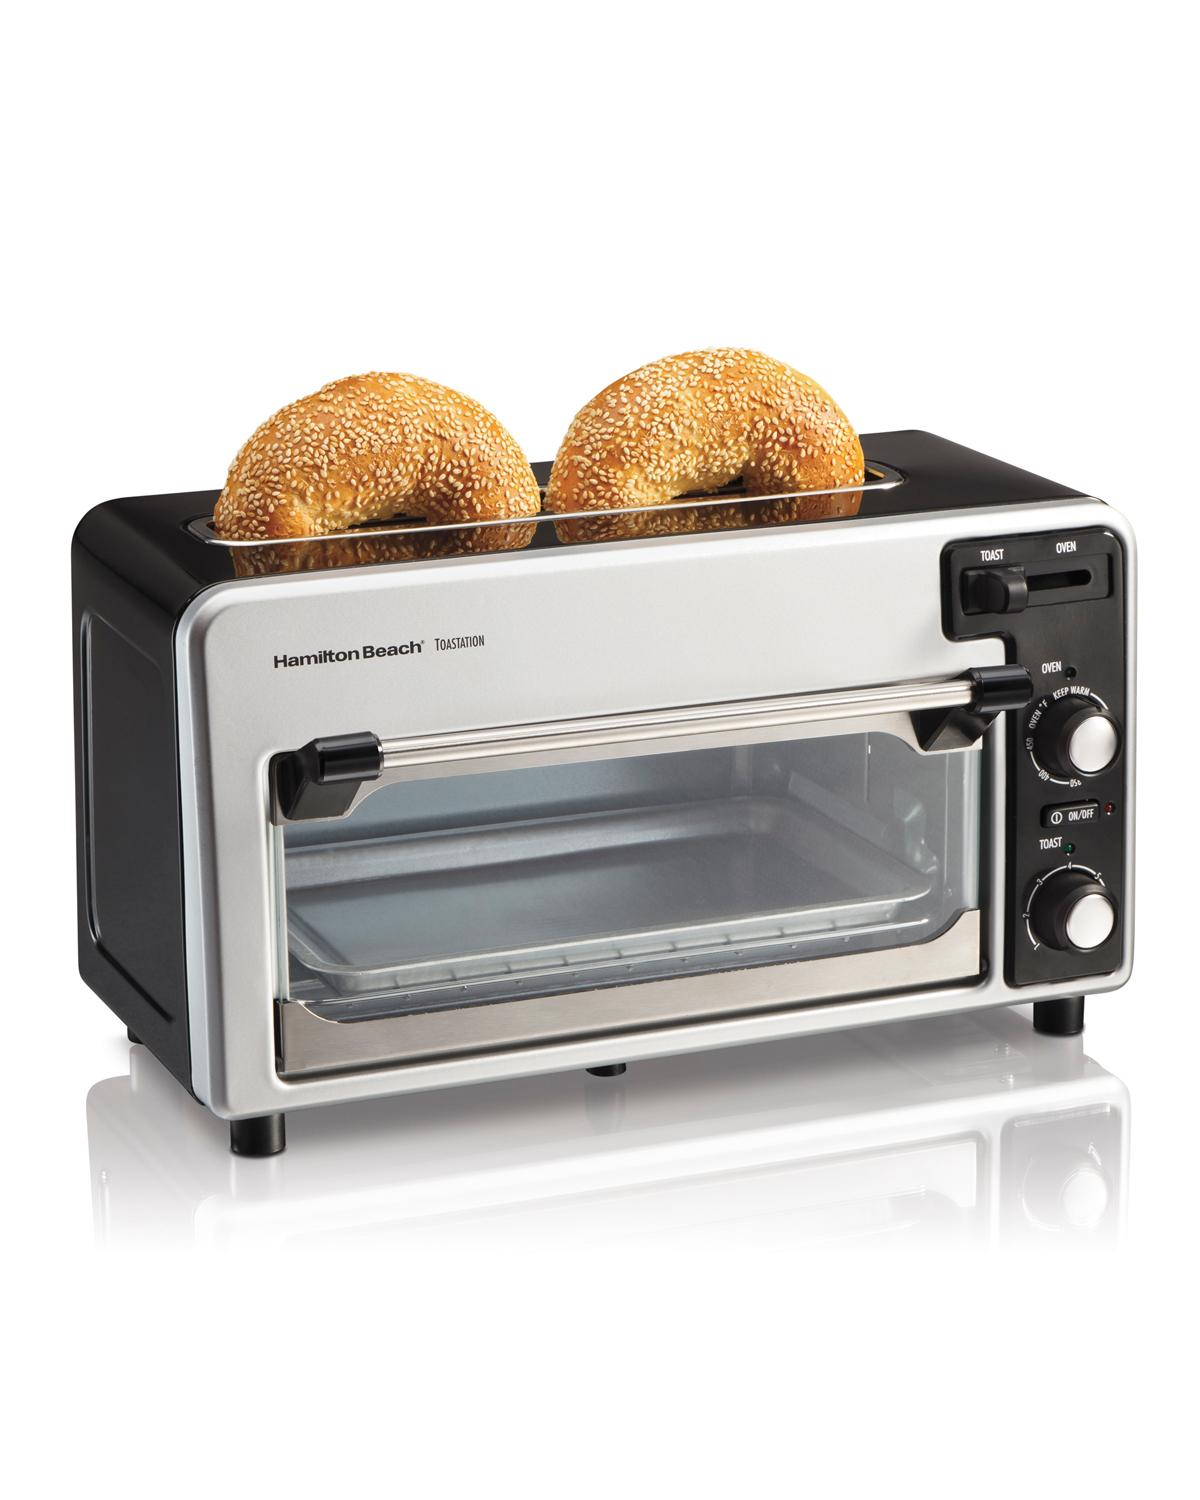 Hamilton Beach 2 Slice Toaster and Small Oven bo Black